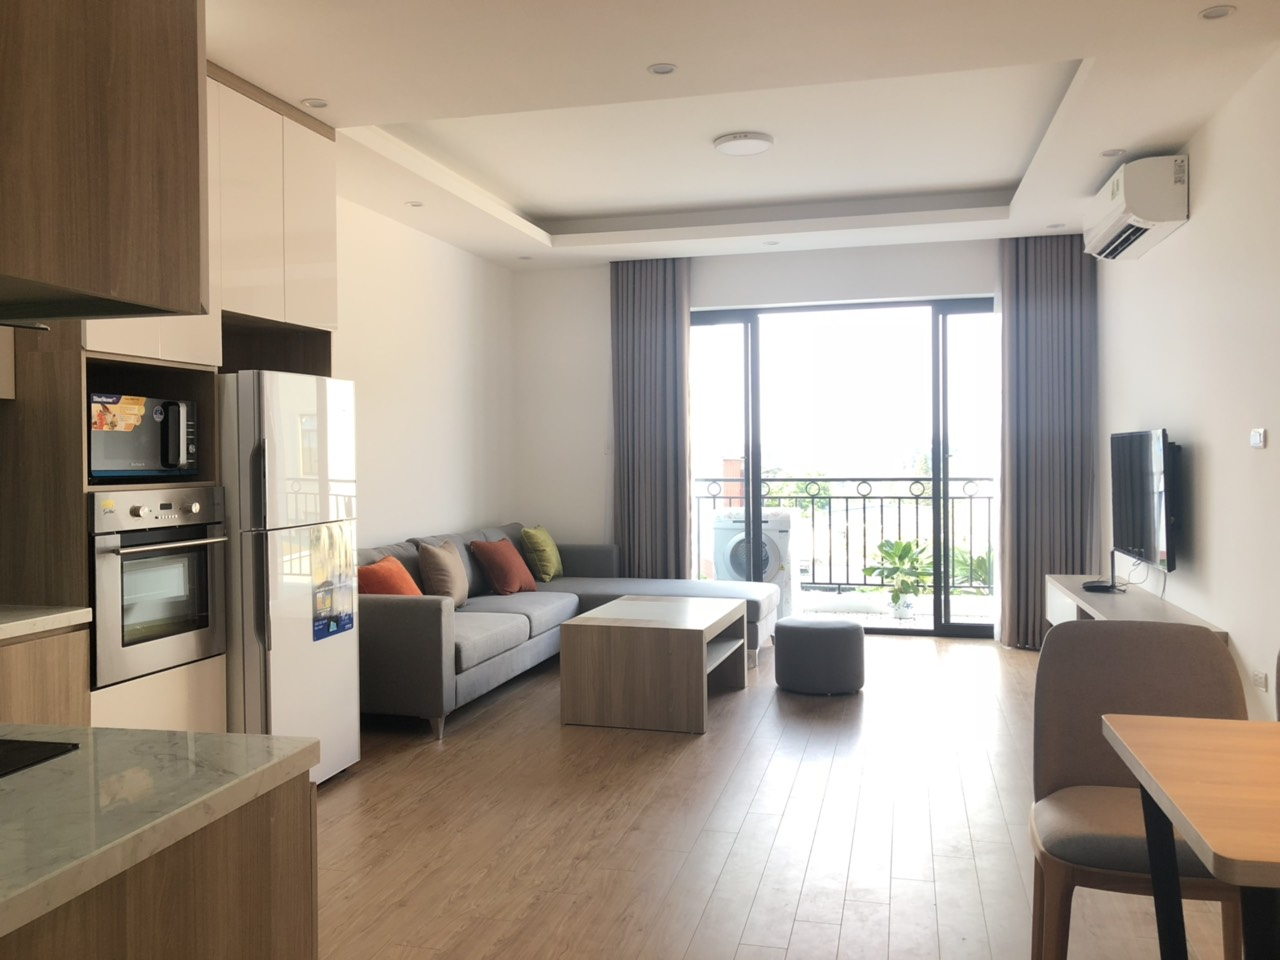 2 bedroom apartment for lease in Au Co street, Tay Ho district!